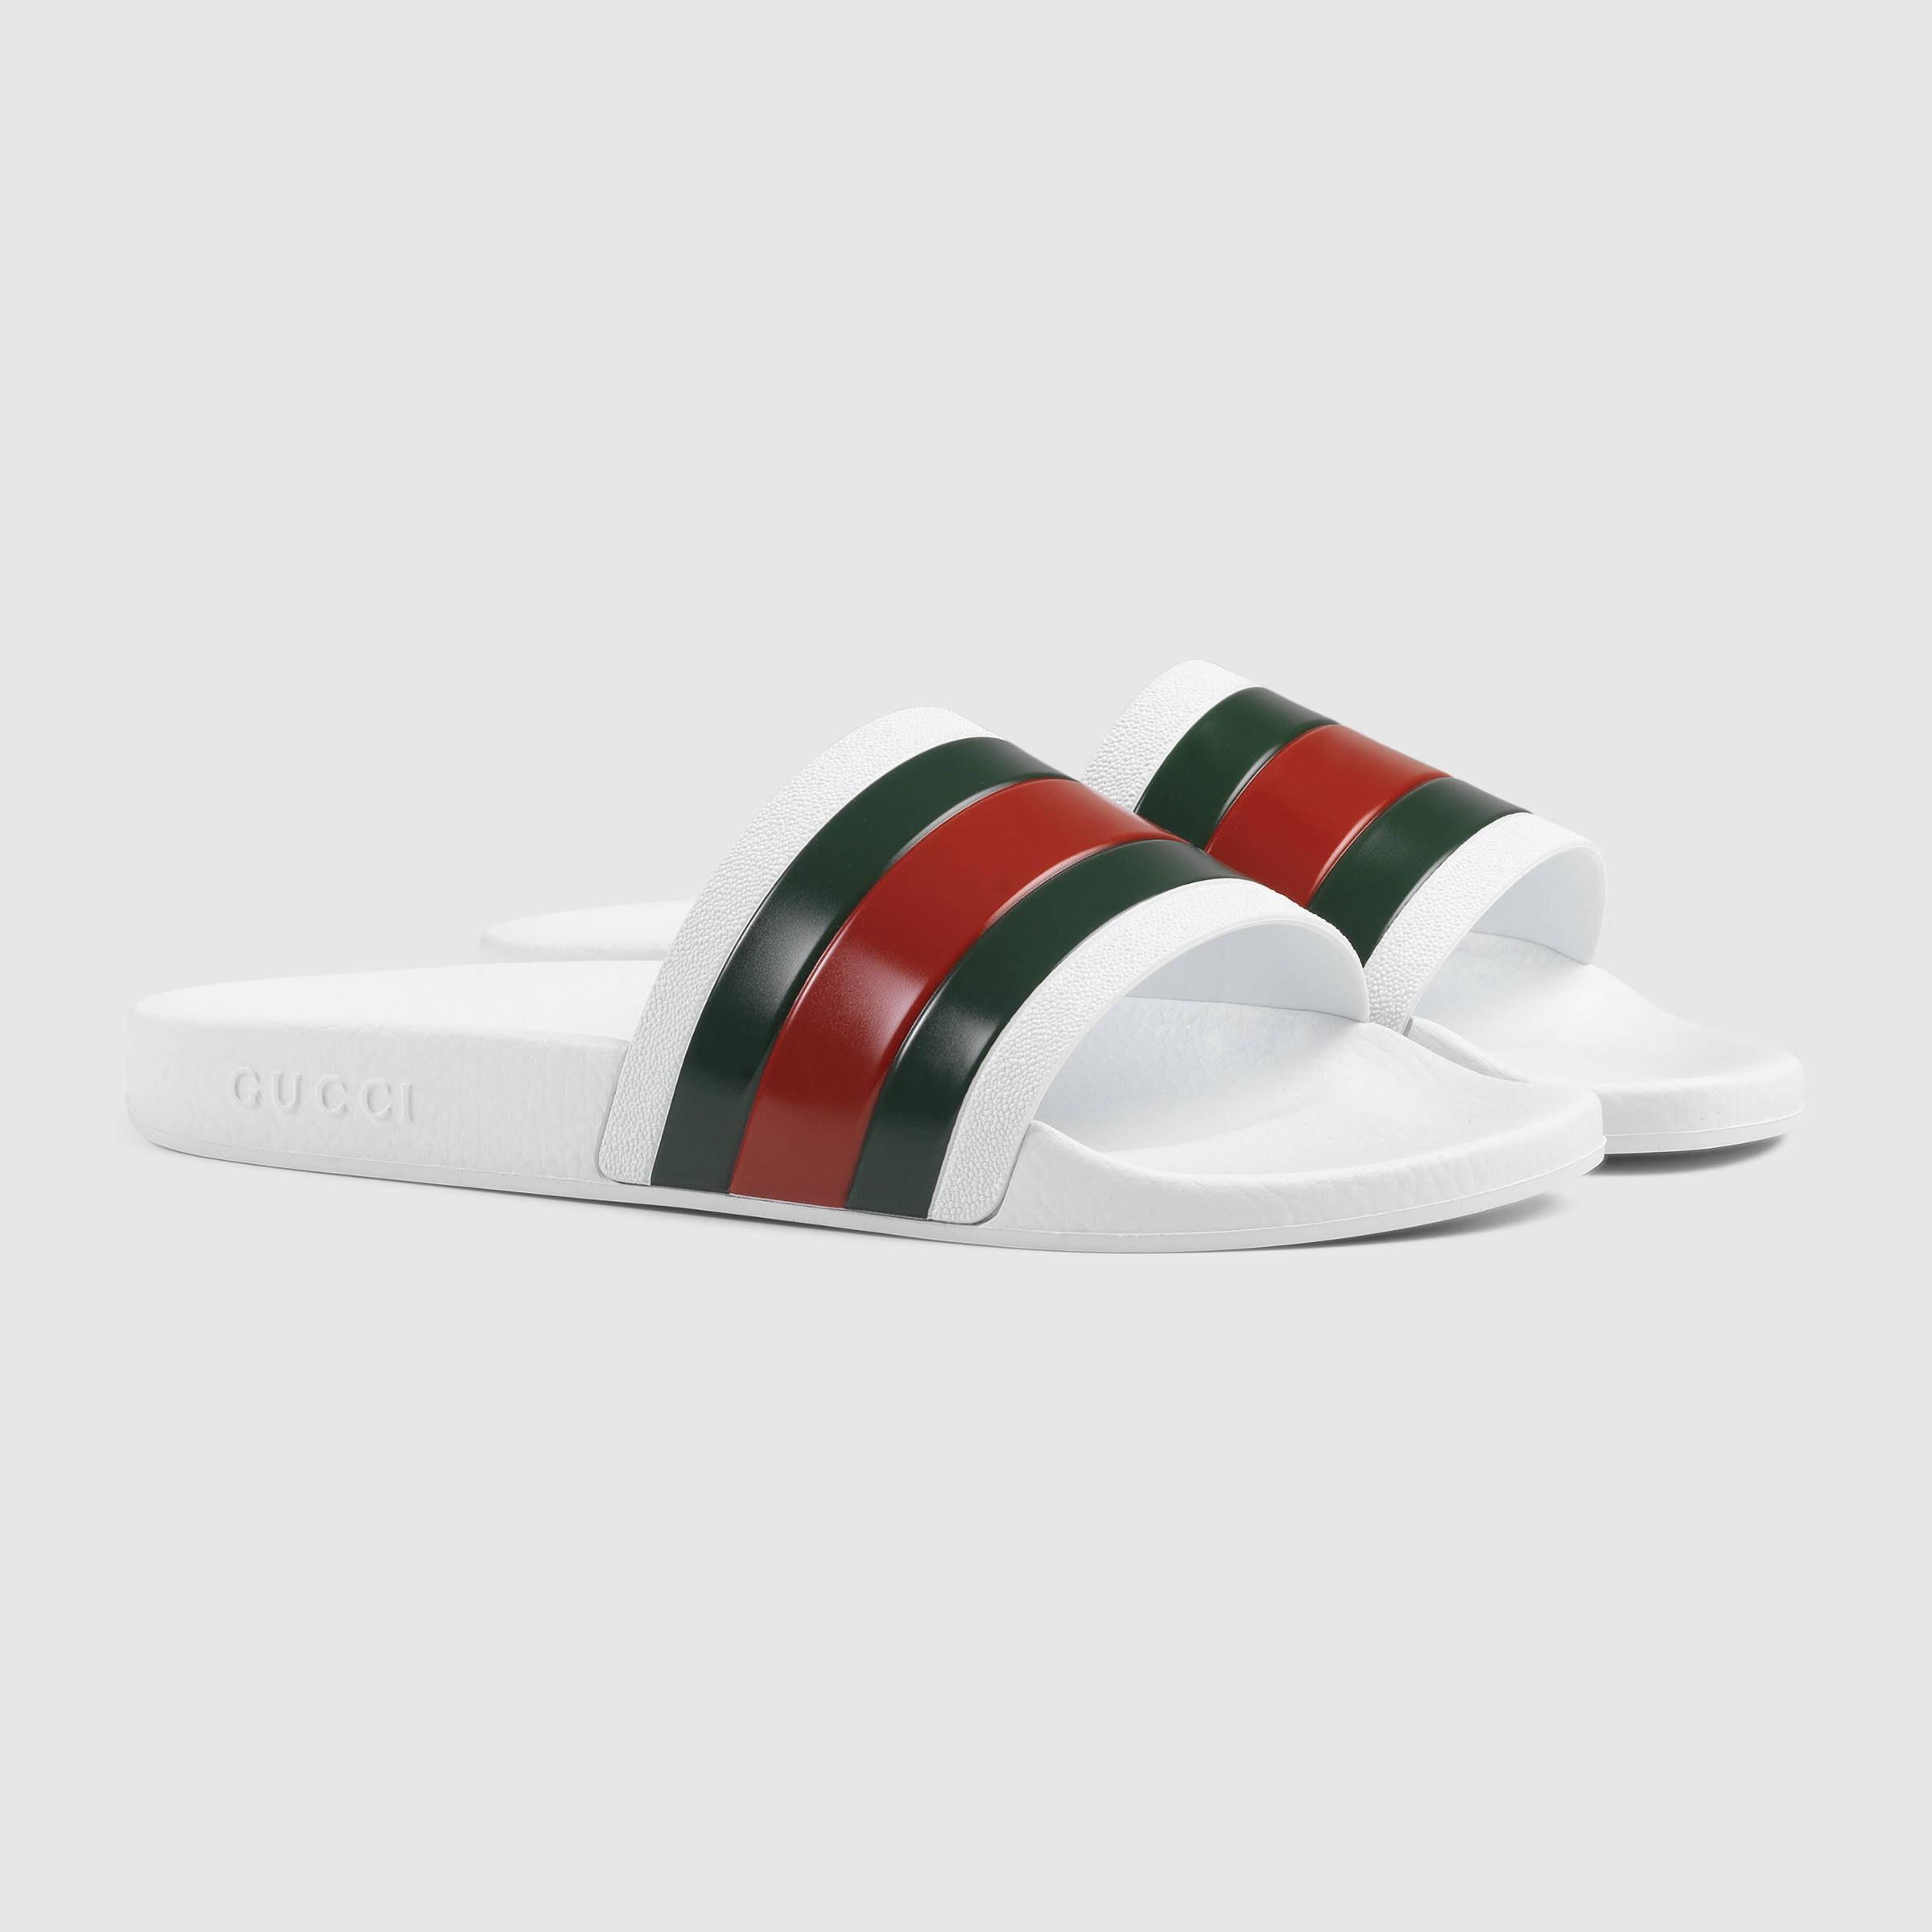 65dd5e0d72bd Are gucci flip flops worth jpg 880x660 Gucci flip flops